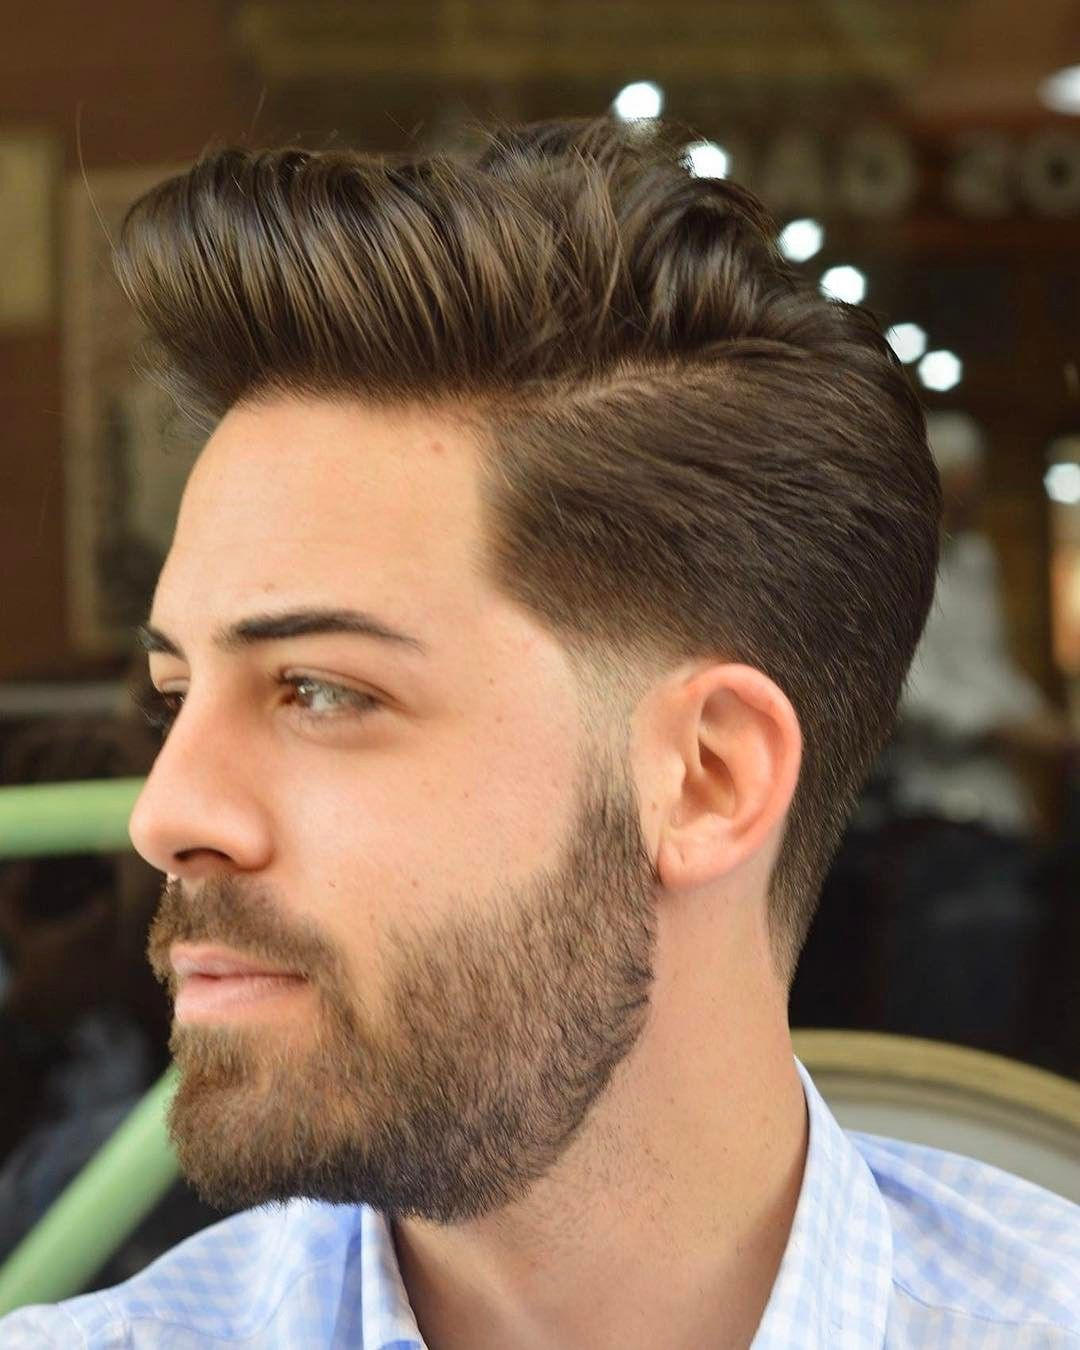 Classic Hairstyles For Men Best Hairstyles For Men  Latest Hairstyles For Men 2017  Pinterest